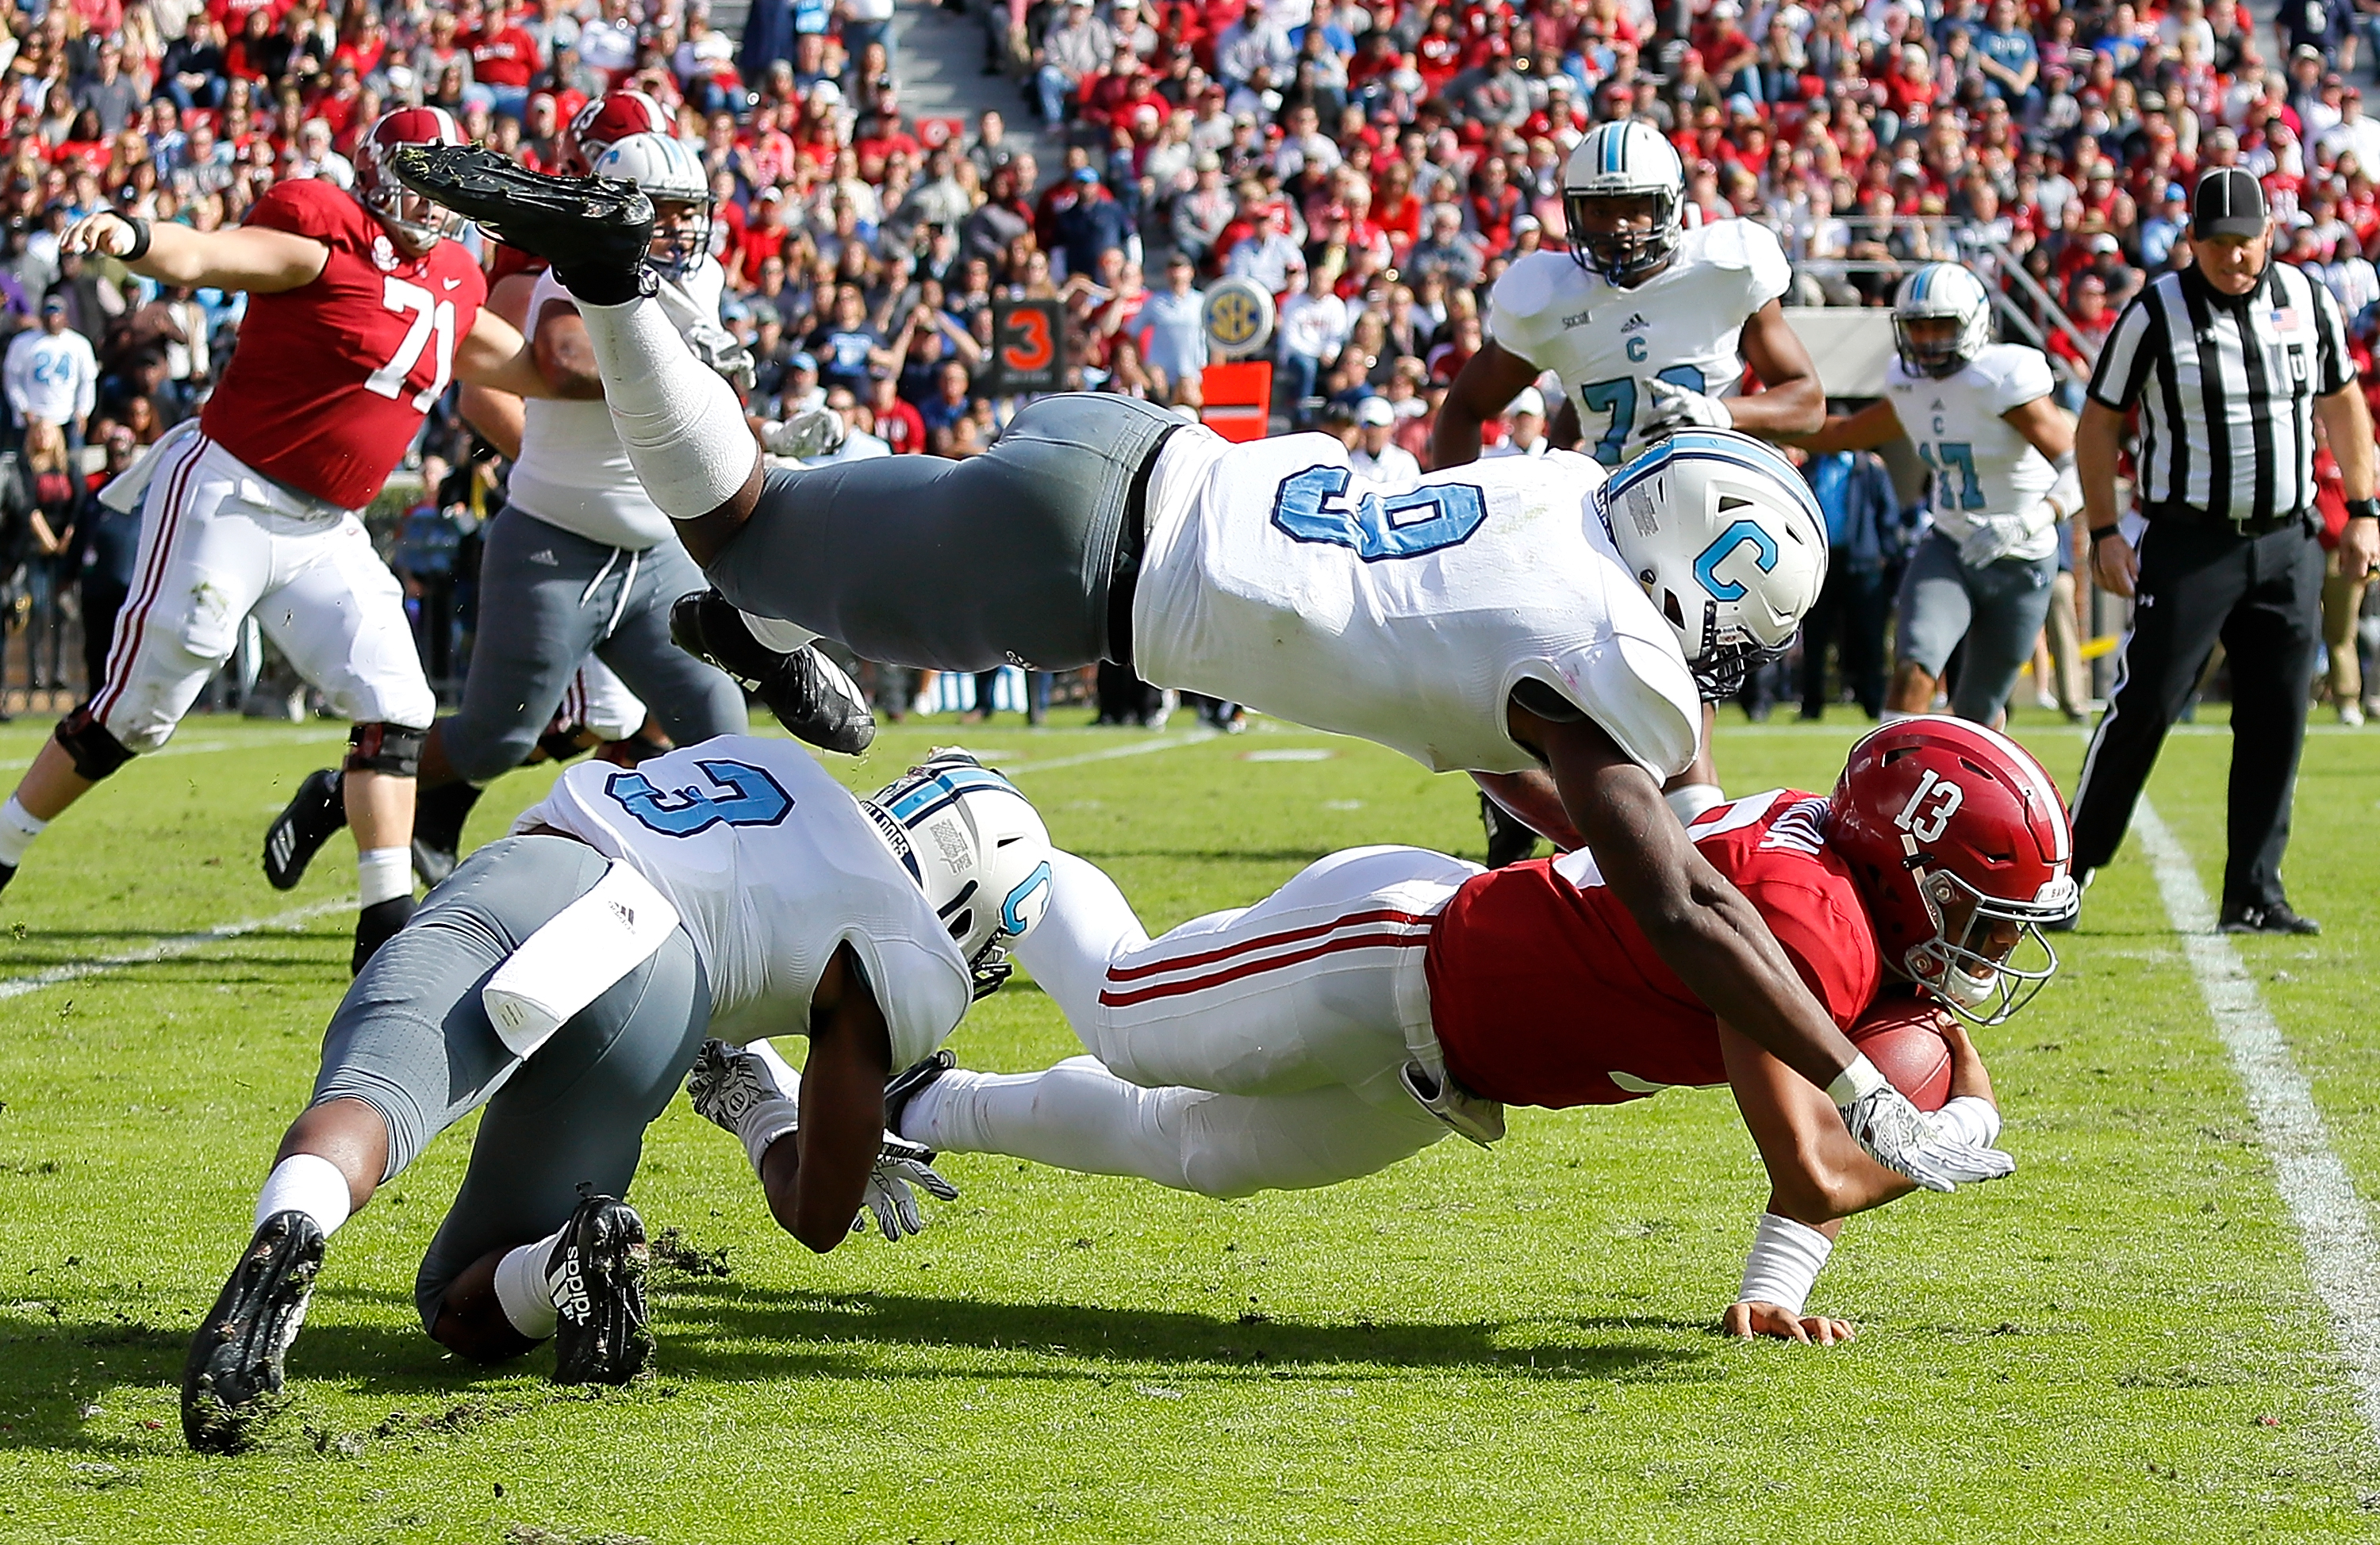 8 reasons The Citadel's first half against Alabama was incredible